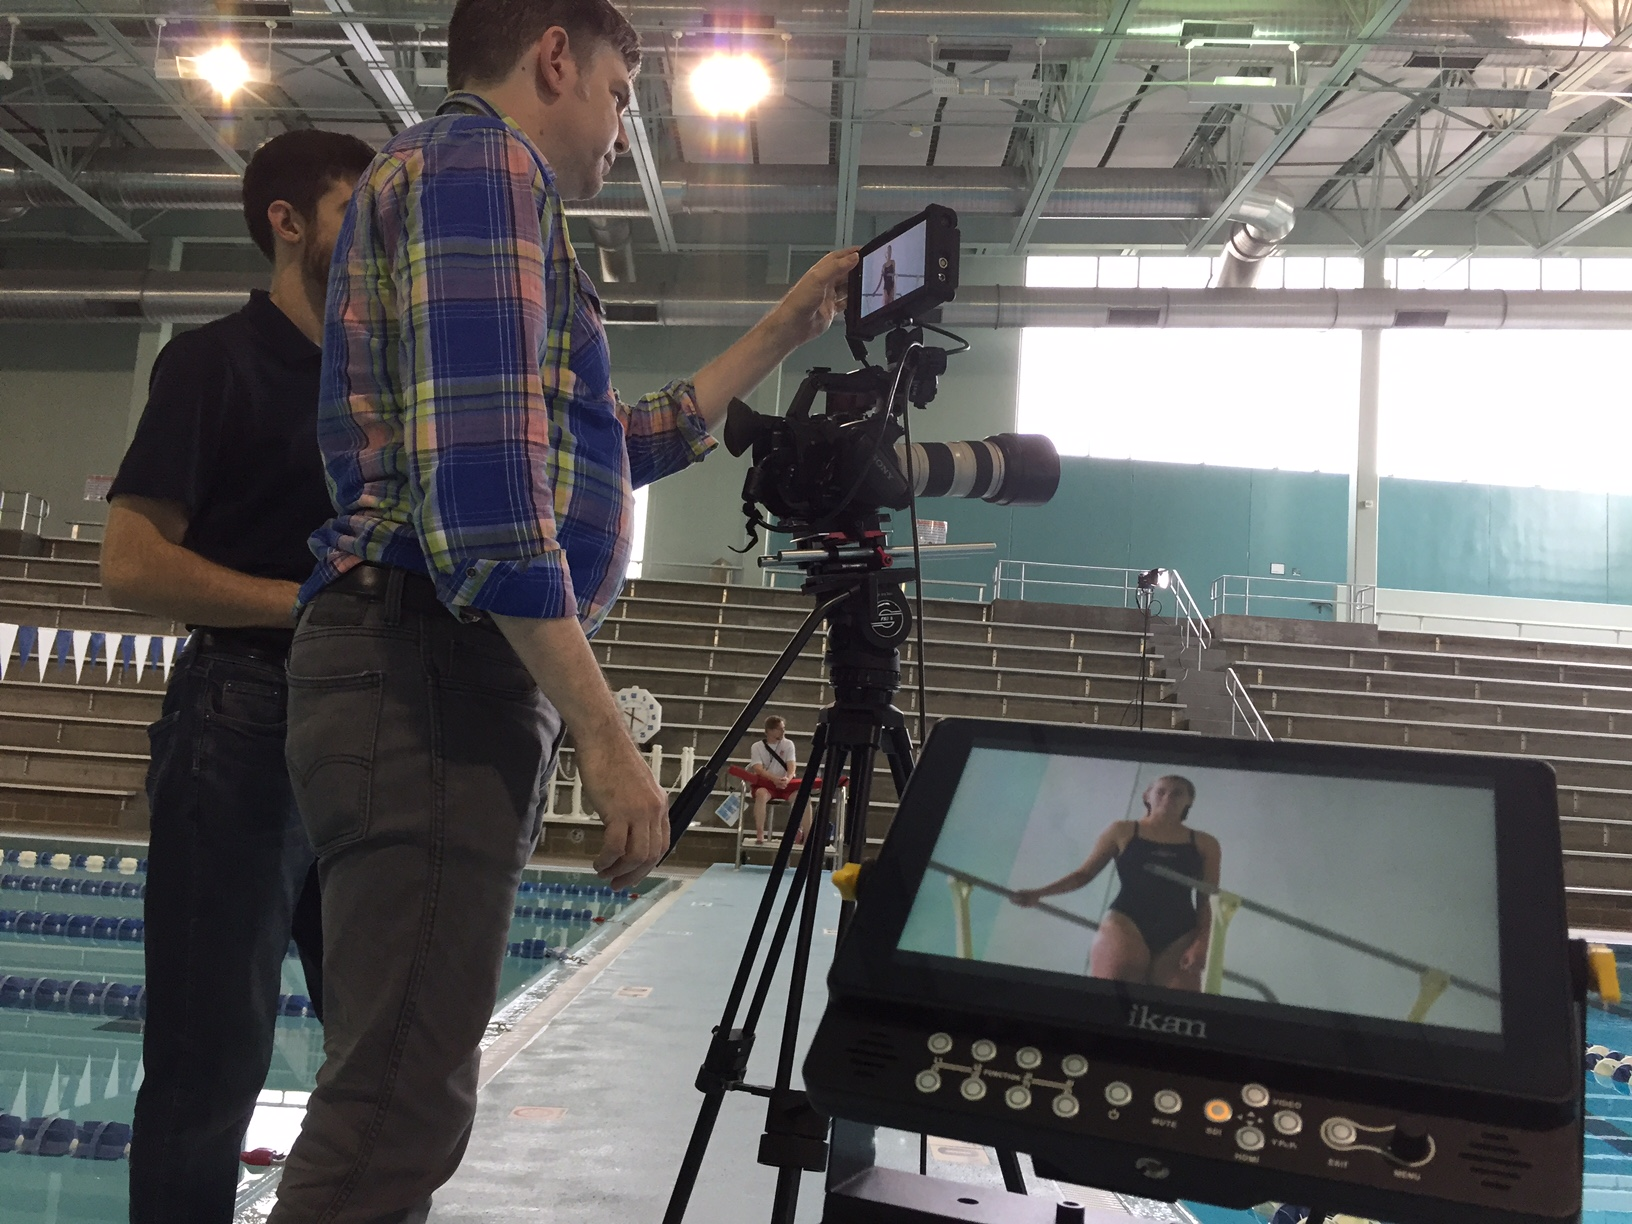 Video production kansas city, director of photography, coverage, lights camera action,